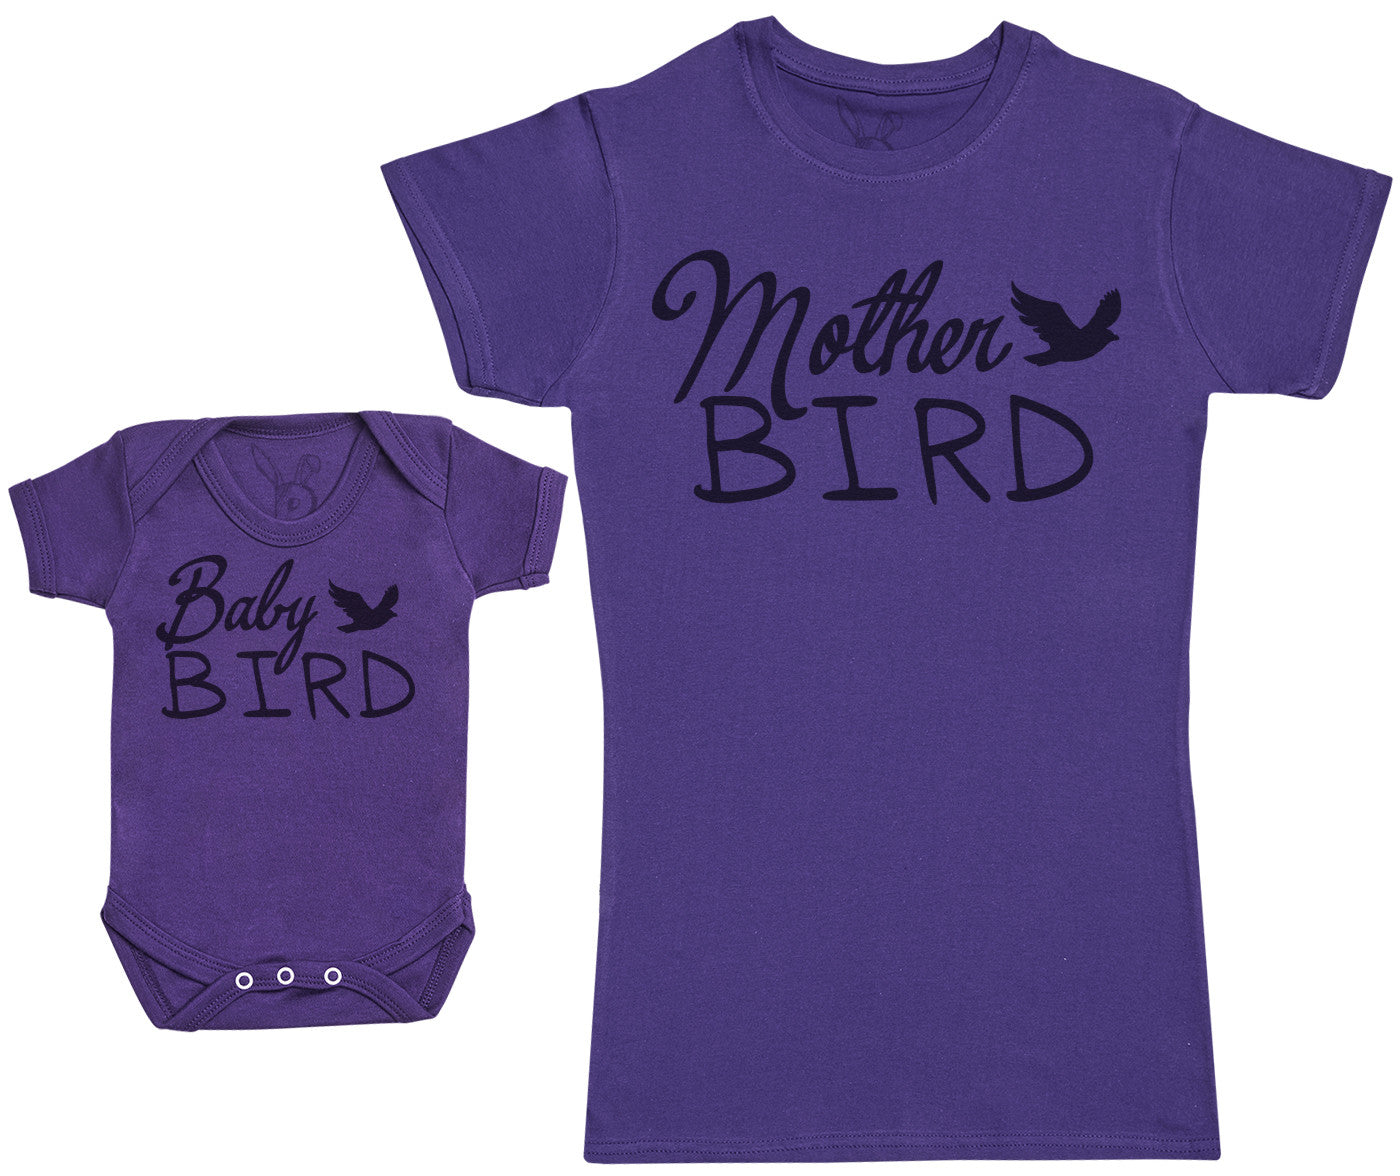 Baby Bird - Baby Gift Set with Baby Bodysuit & Mother's T-Shirt